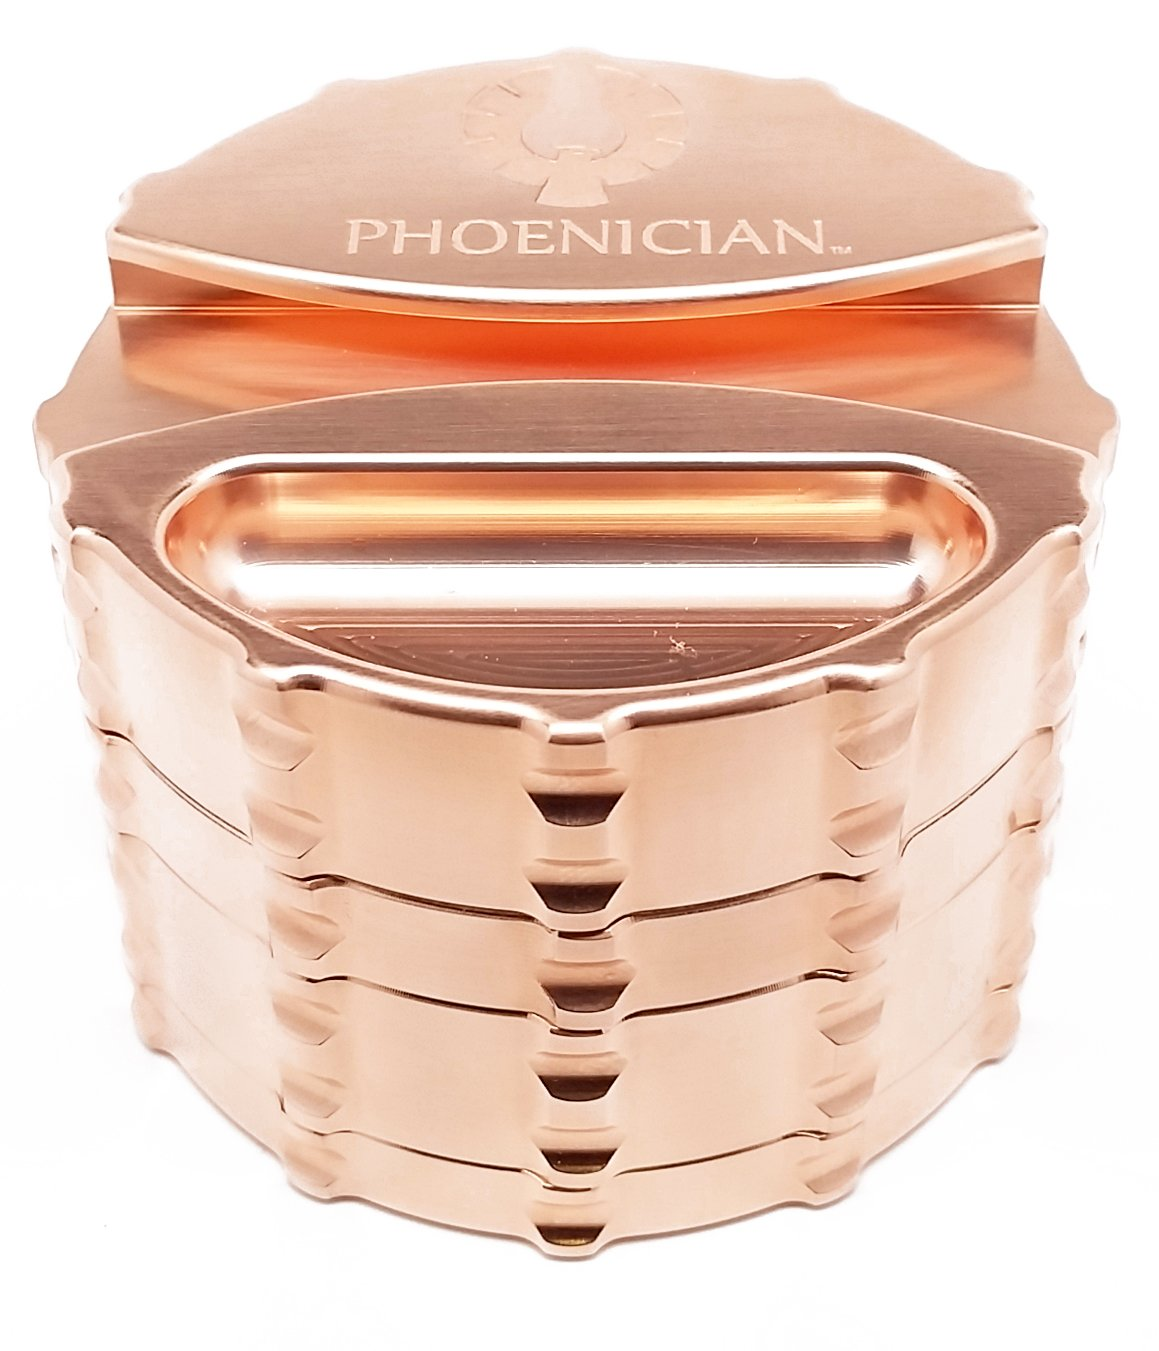 Phoenician Elite Grinder - Large 4 Piece - Copper Plated with Papers Holder